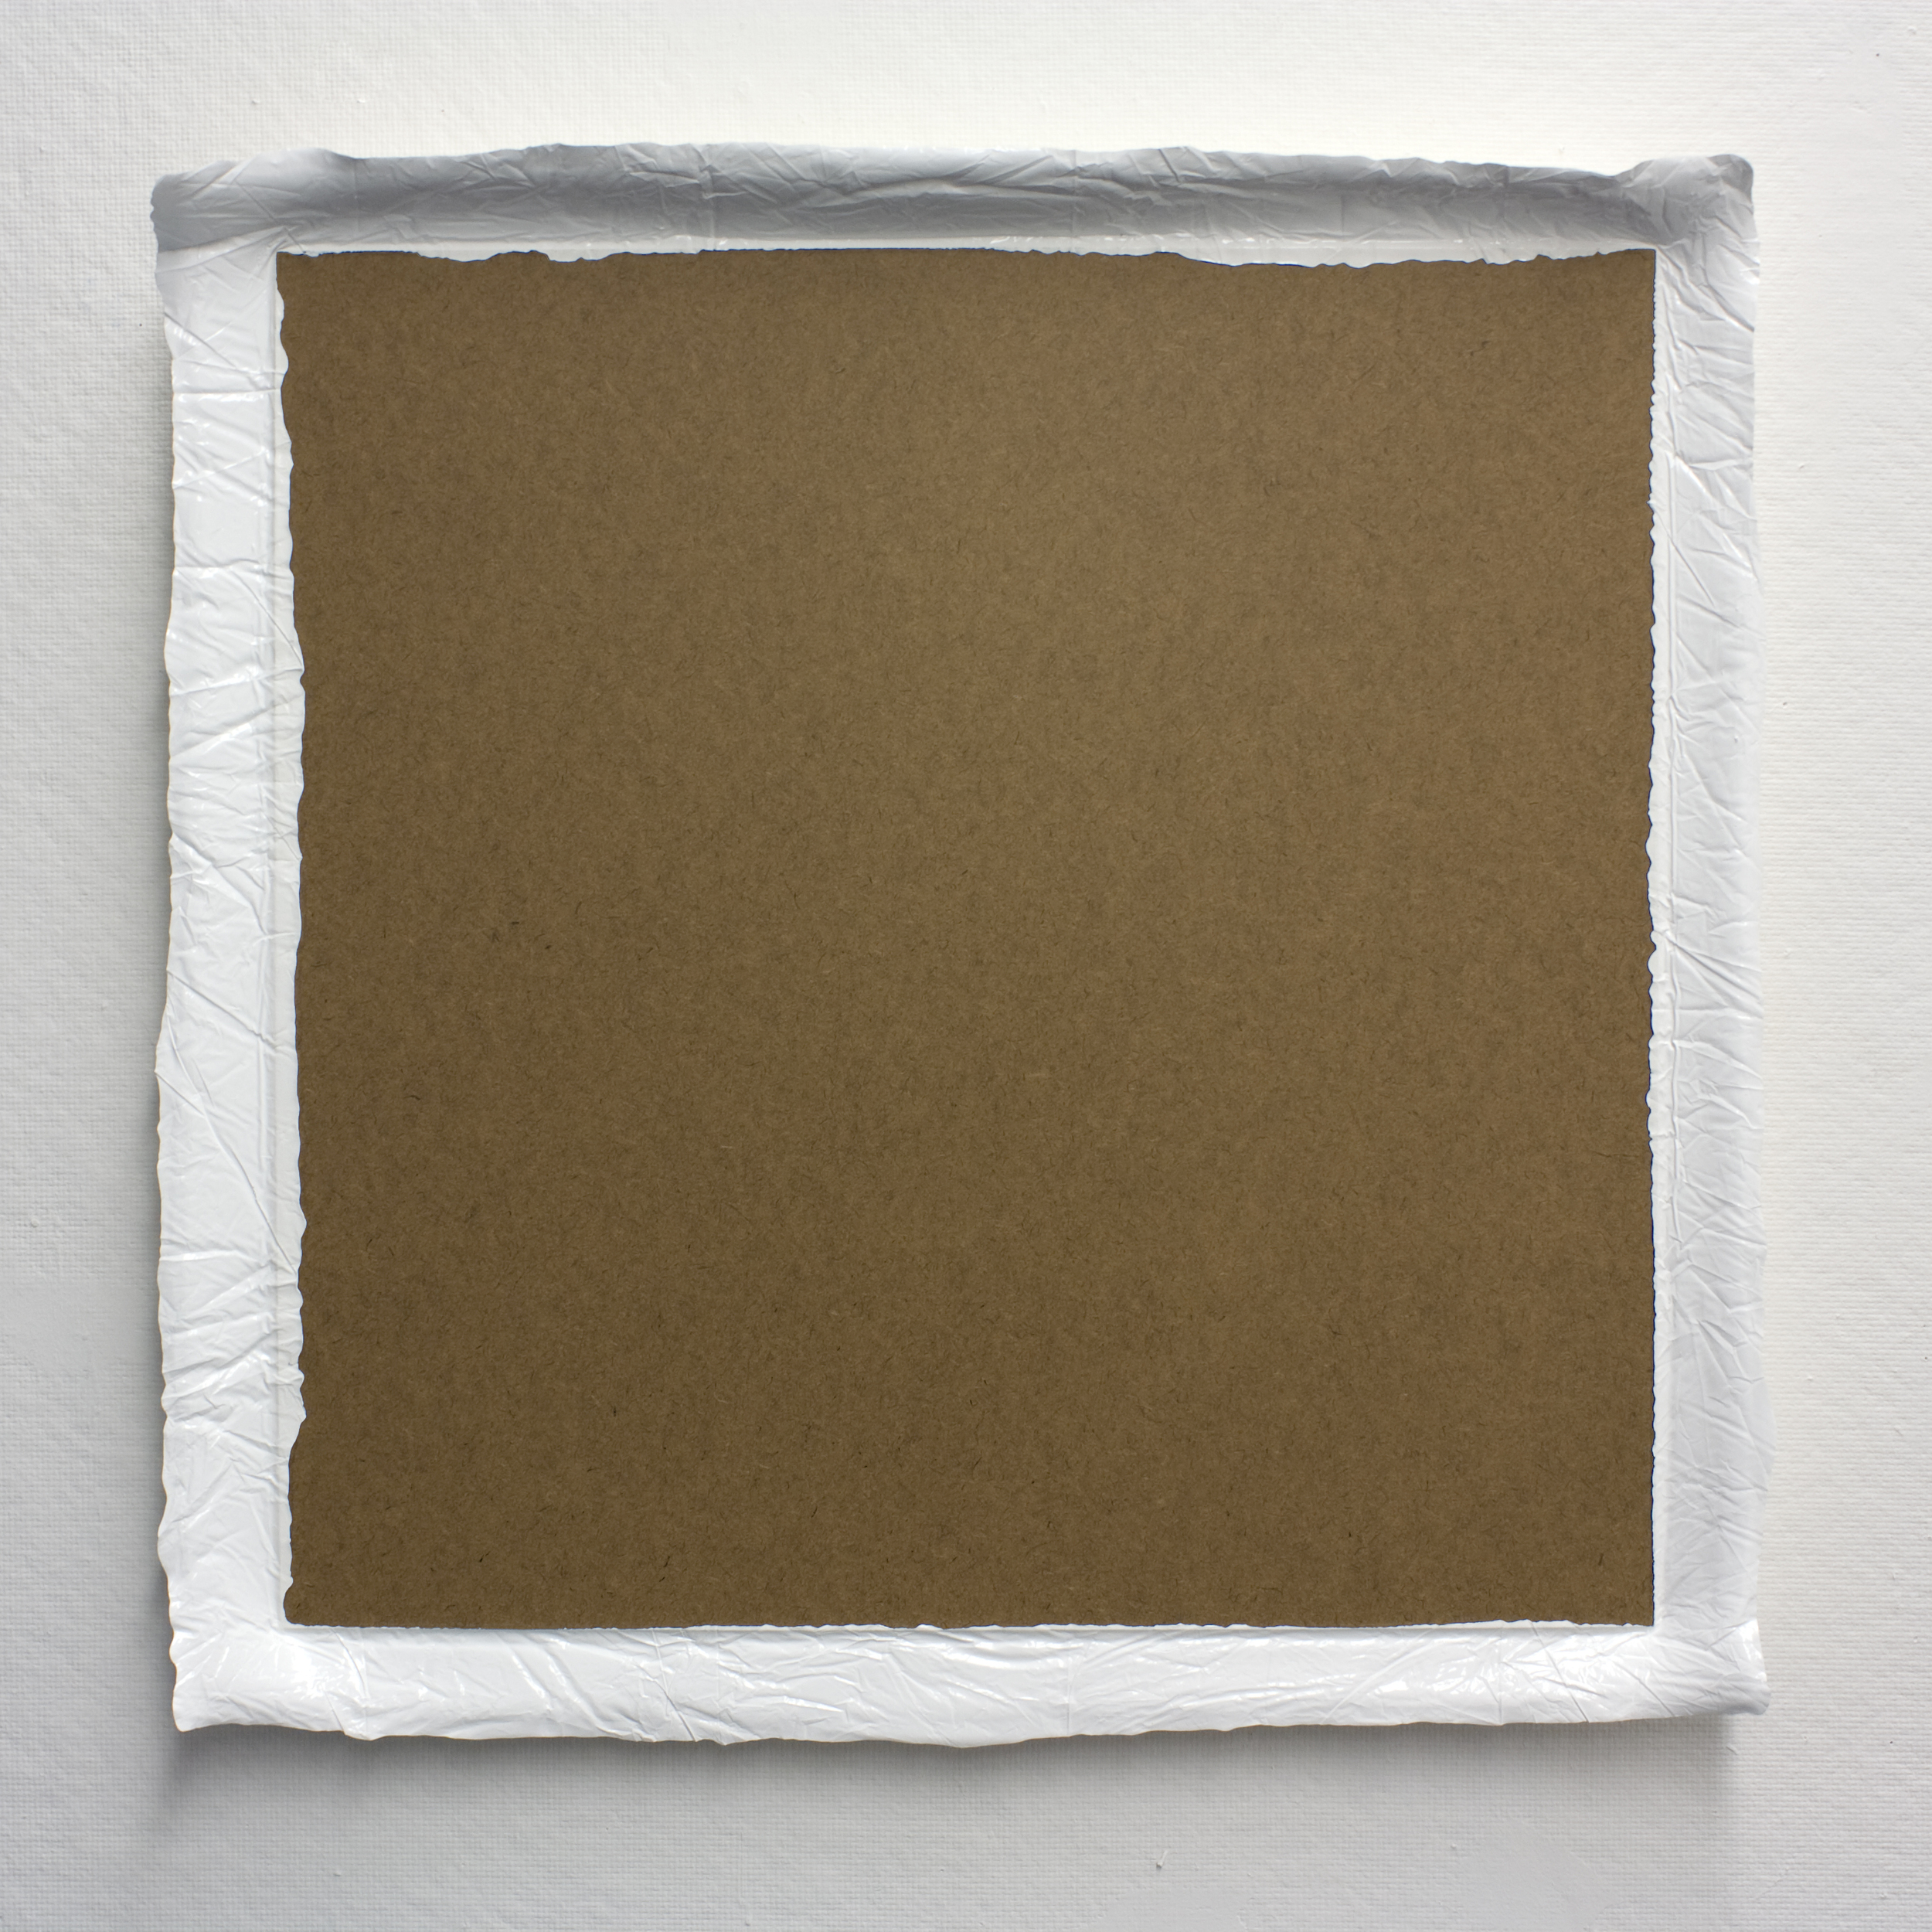 Untitled (White #1), acrylic on board, 2010, 26 x 26in | 66 x 66cm